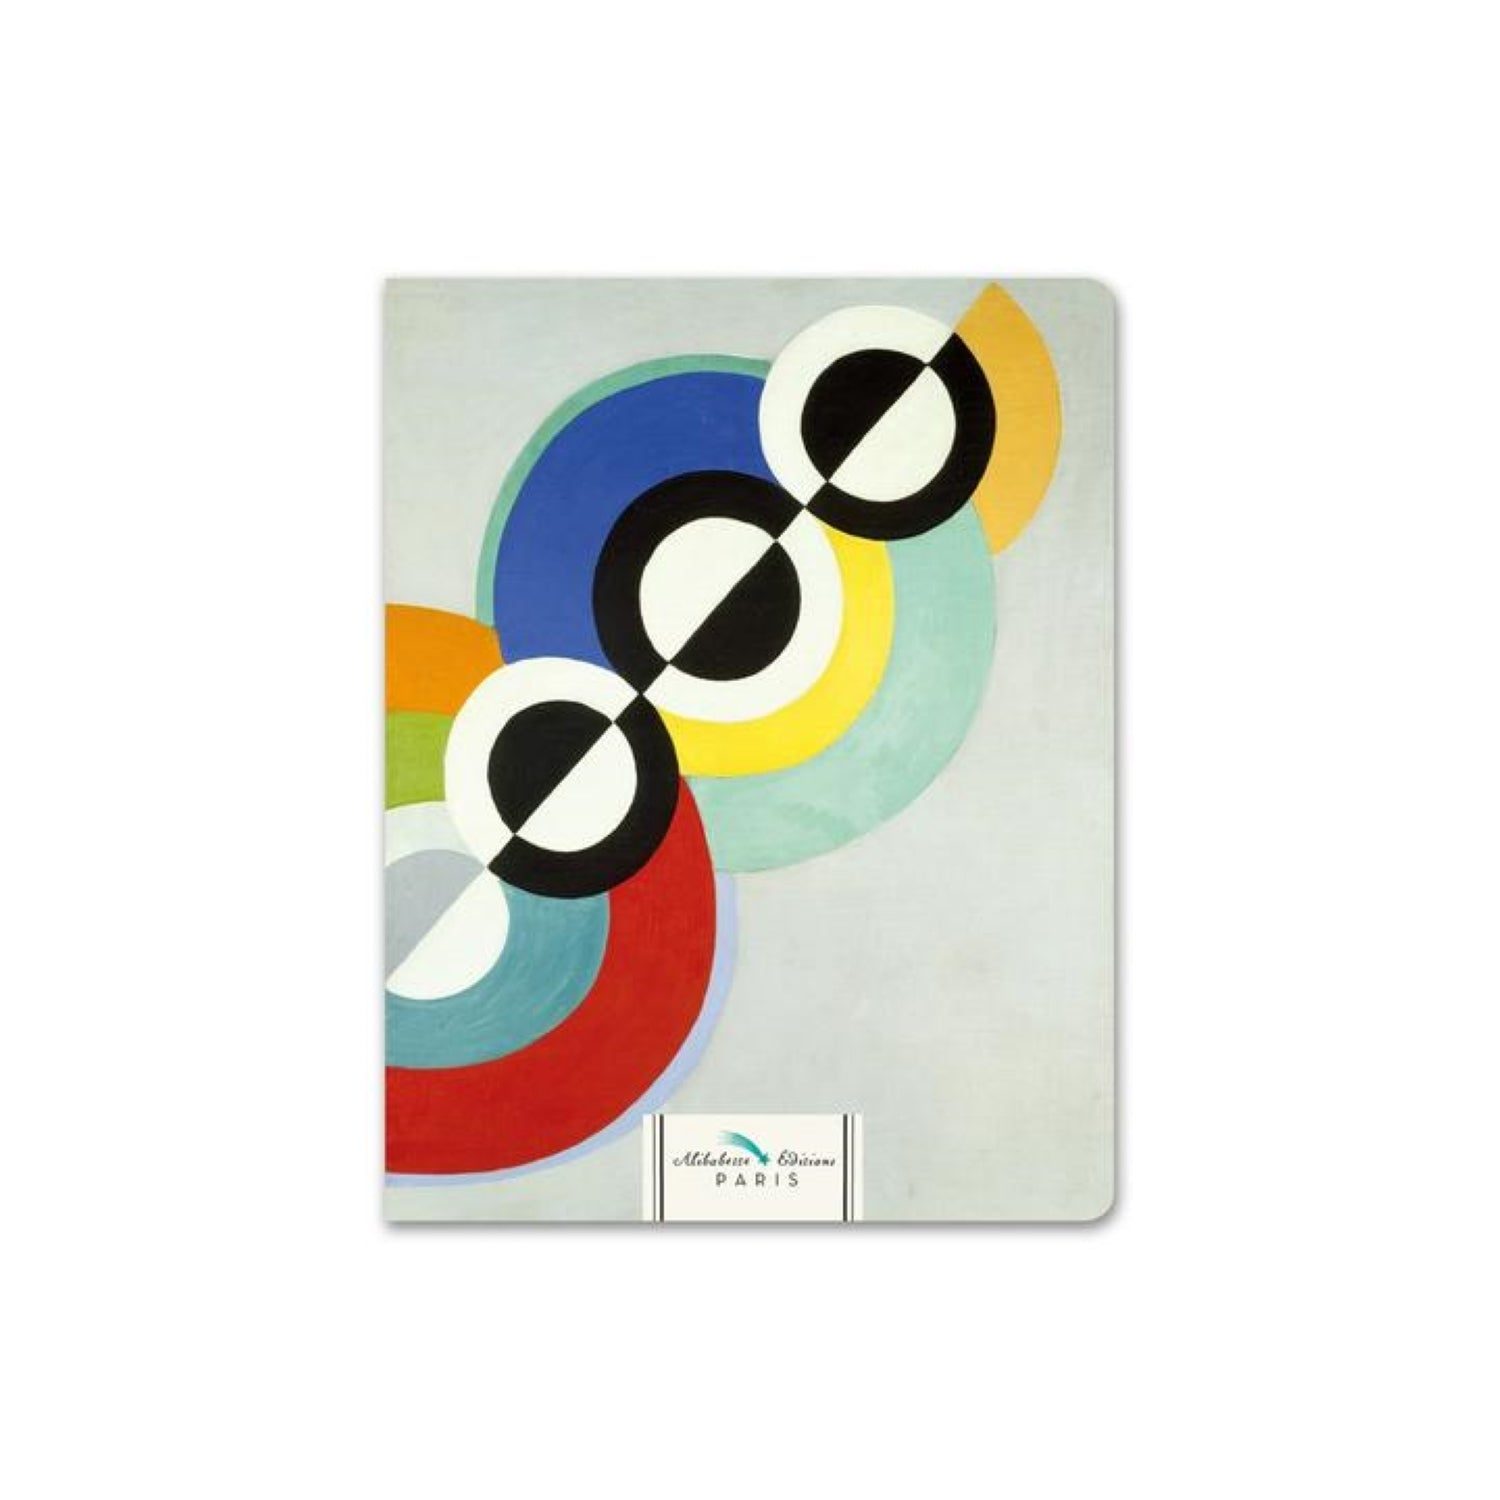 Alibabette Editions Composition Book A5 Lined - Rythme by Delaunay